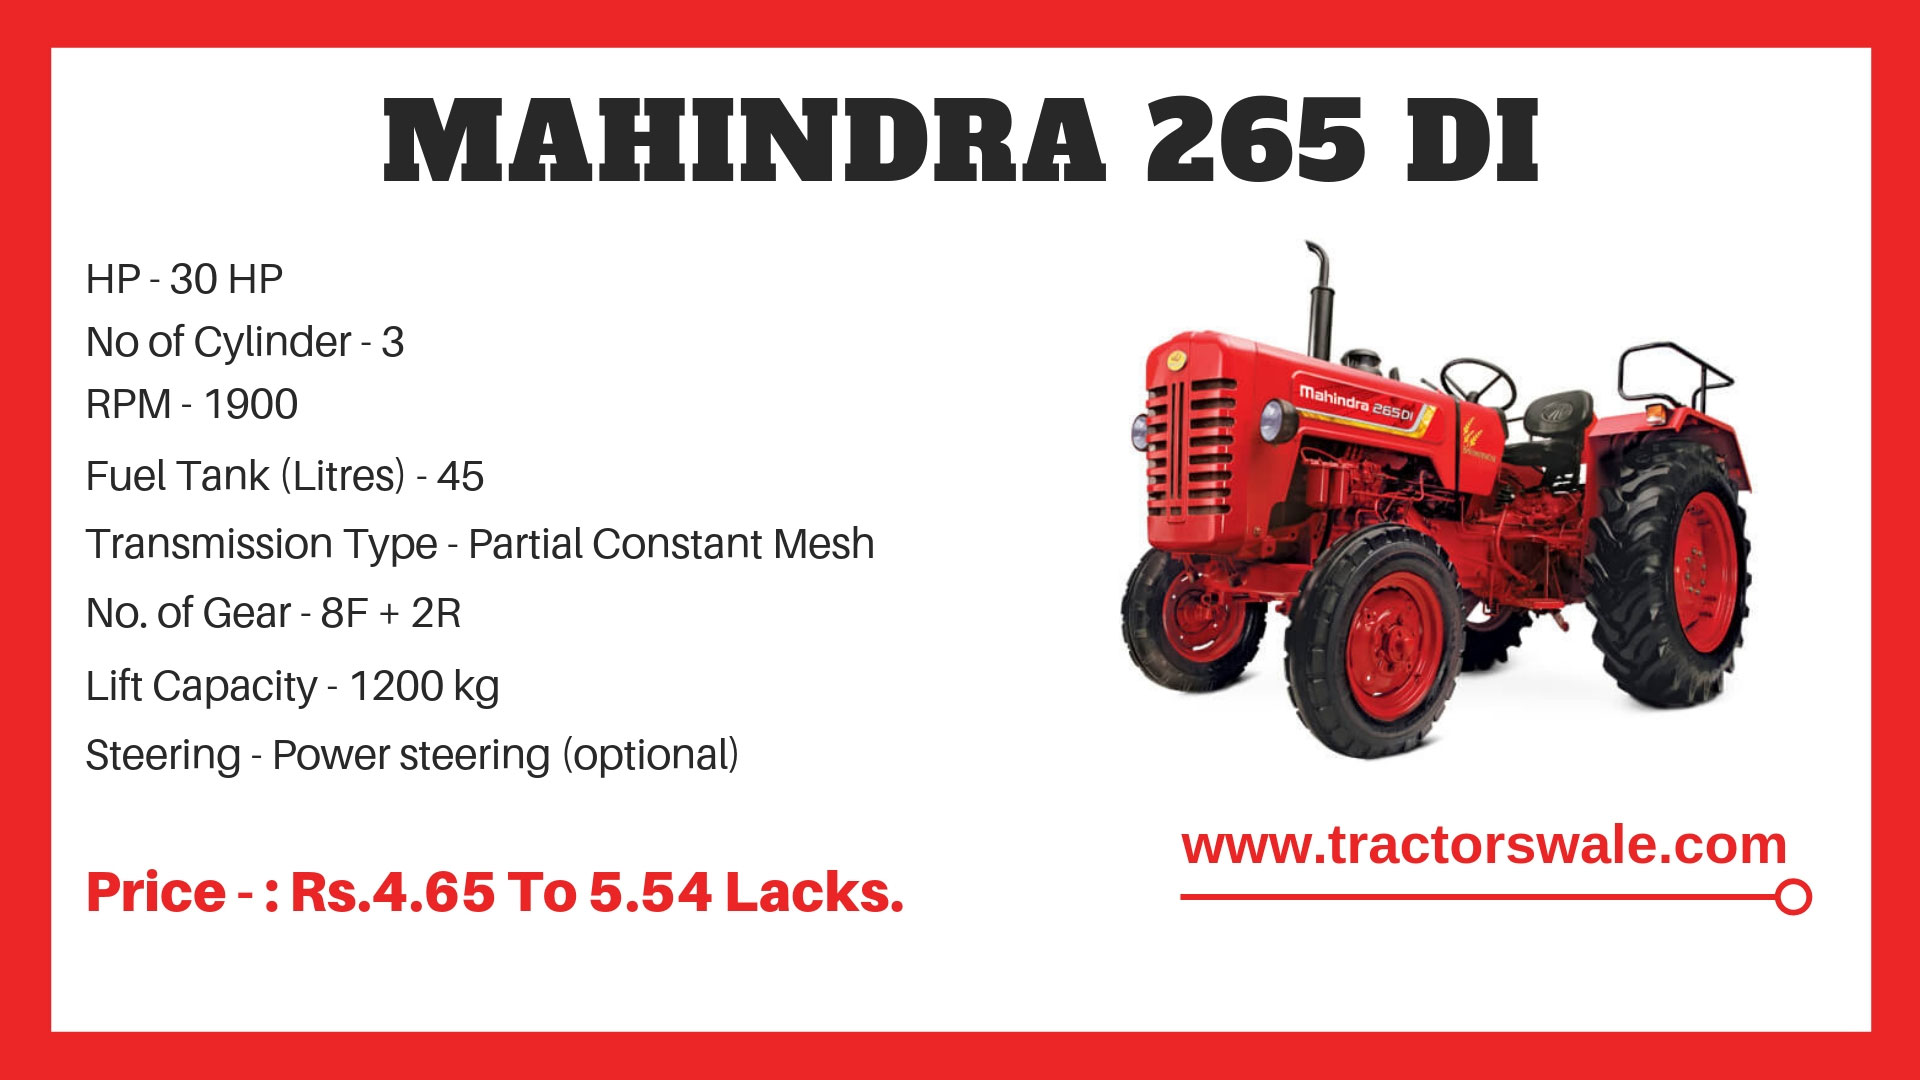 mahindra-265-di-specifications